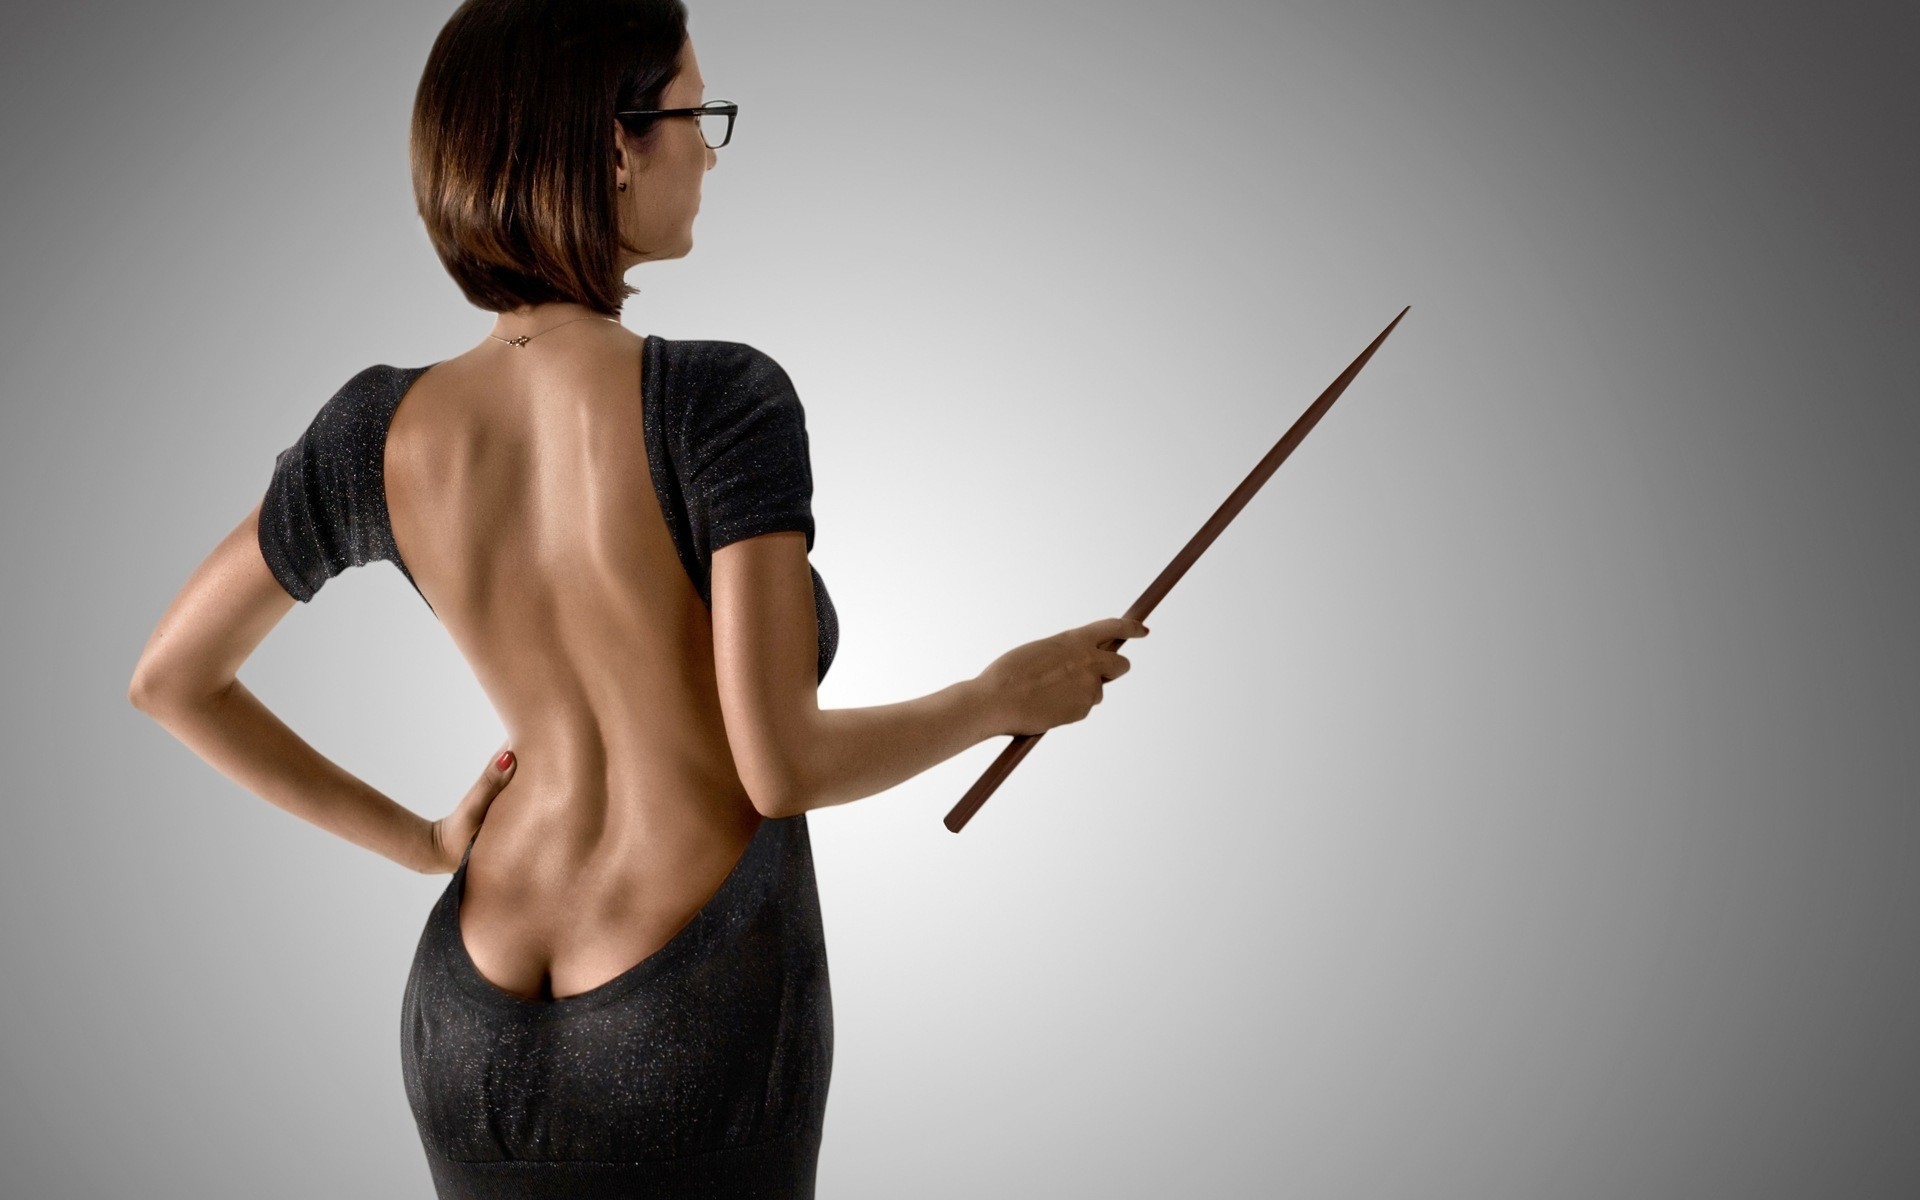 woman dress ass glasses HD Wallpaper